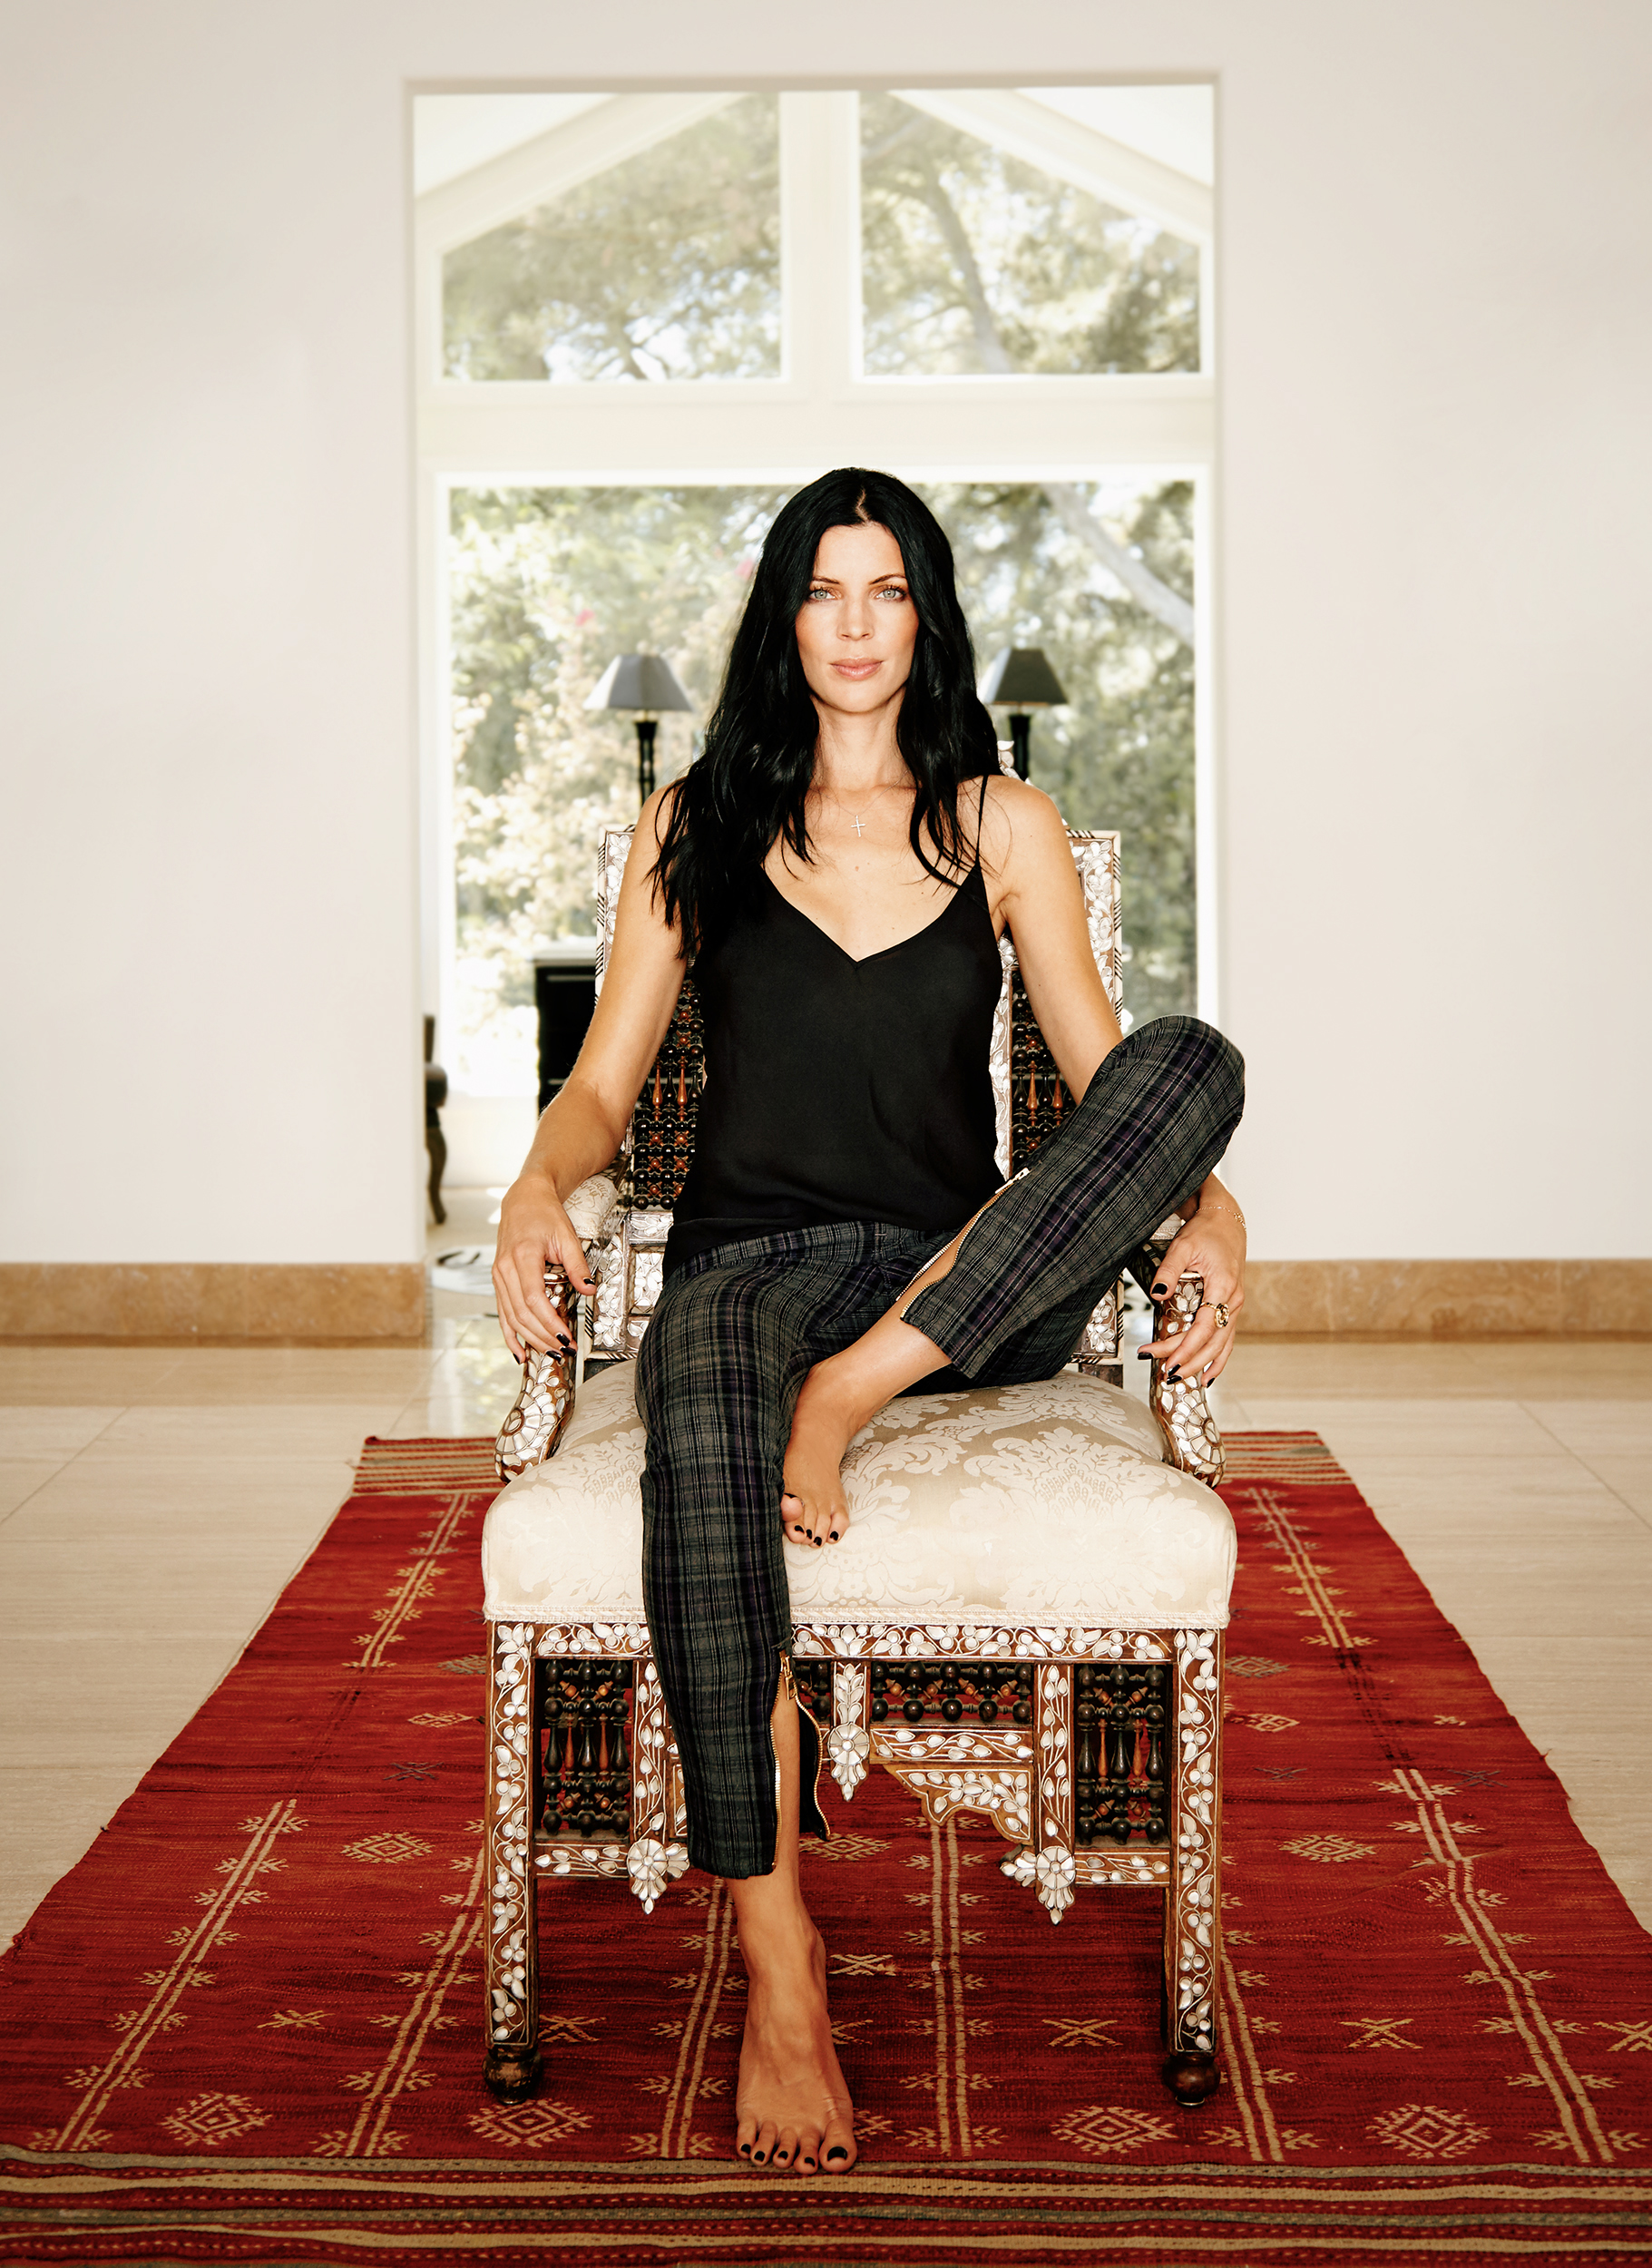 Liberty Ross low res.jpg